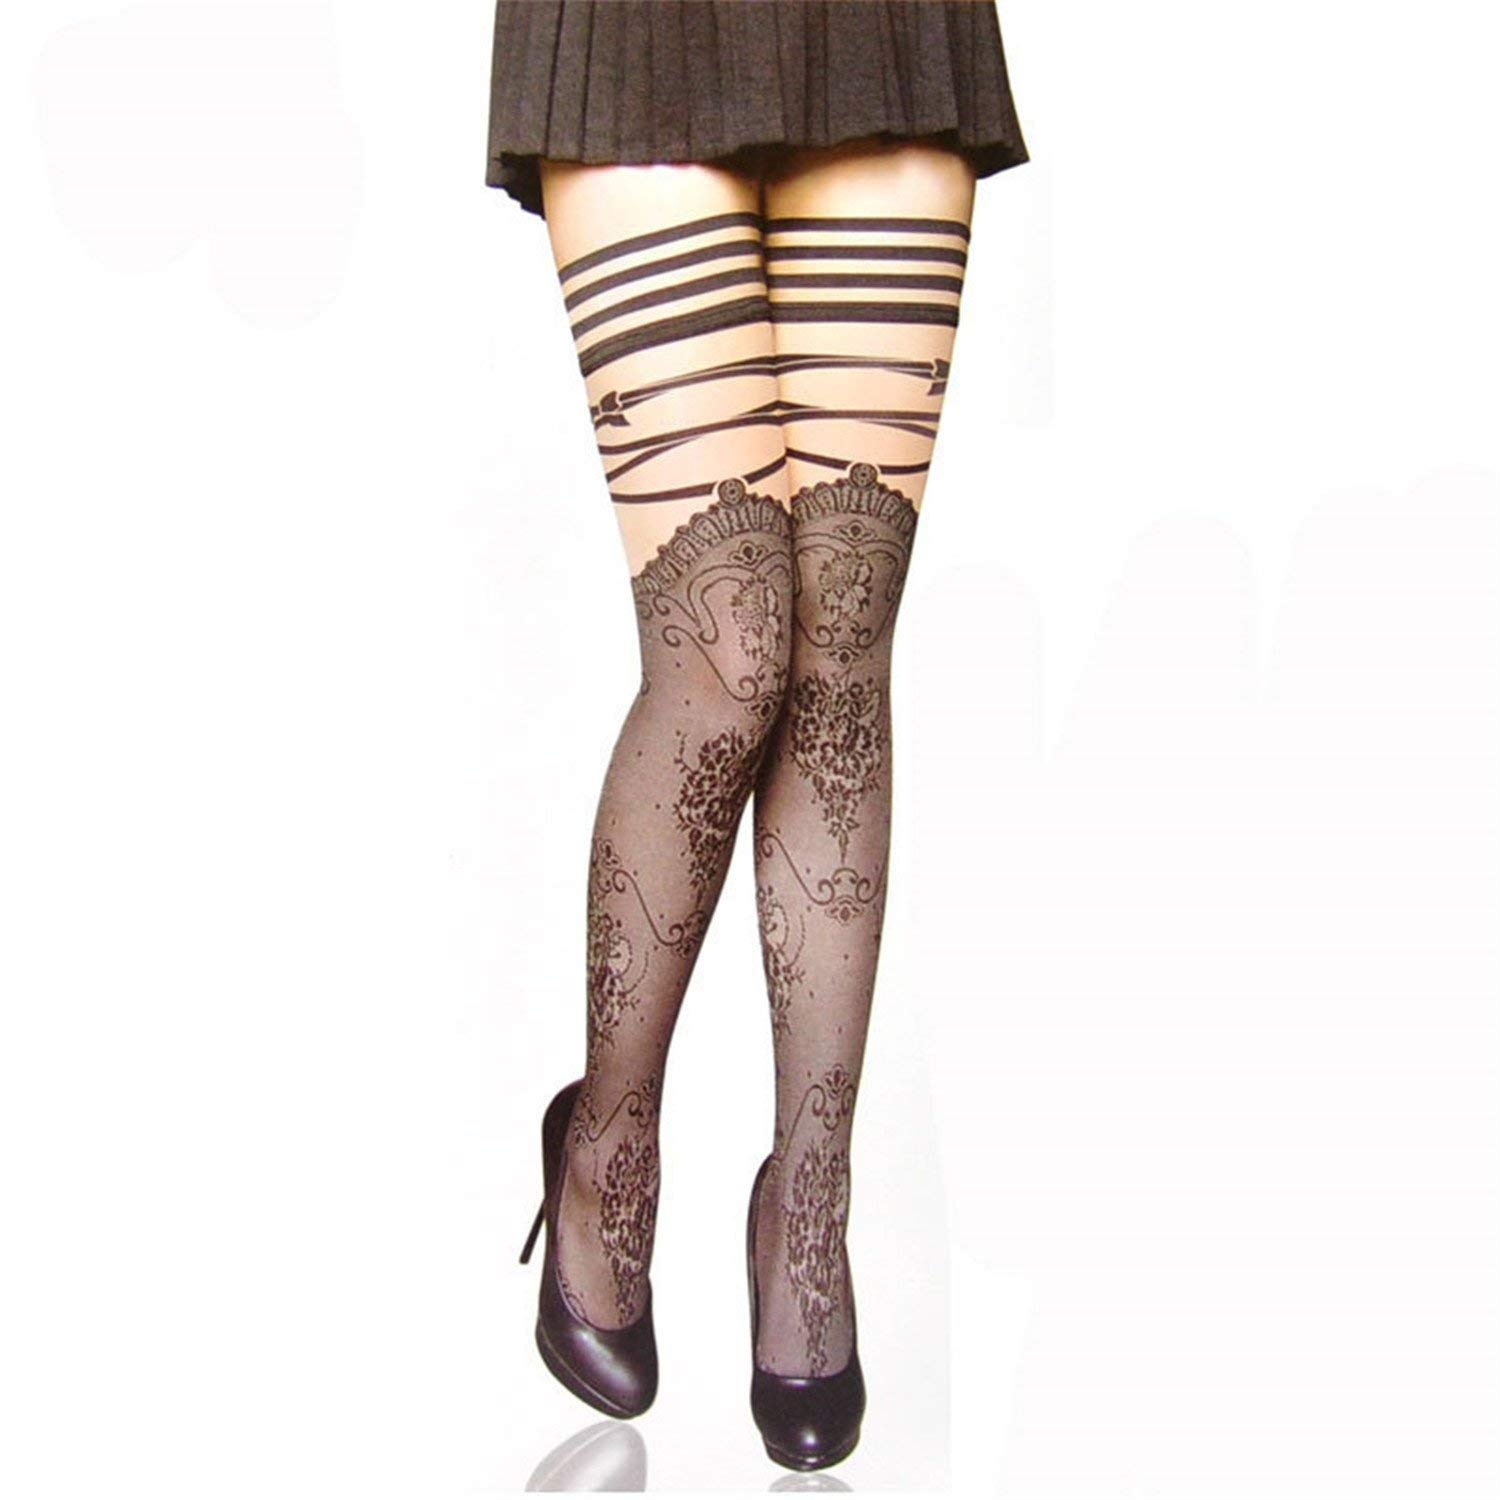 94d173719b7 Get Quotations · Solme Hot Sell Punk Gothic Wedding Sexy Cuban Heel Wide  Knee Lace Stockings Print Striped Sheer